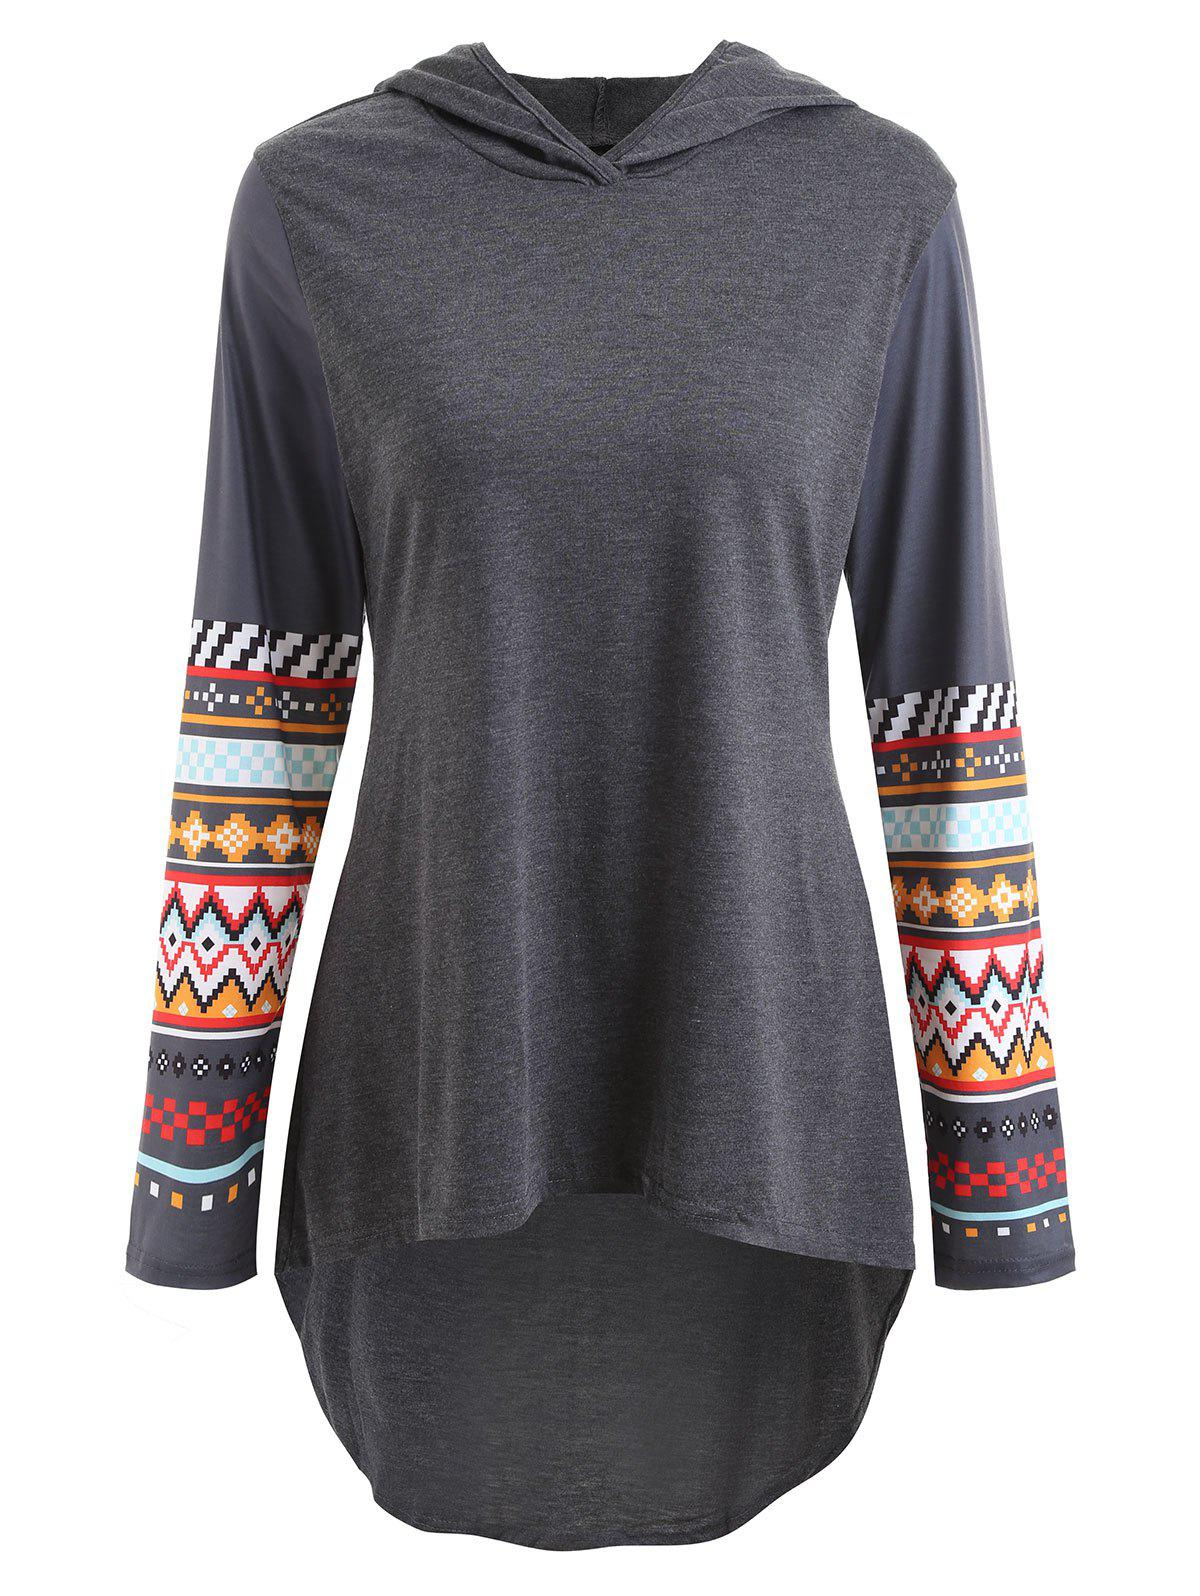 Sleeve Print High Low HoodieWOMEN<br><br>Size: 2XL; Color: GRAY; Material: Polyester,Spandex; Shirt Length: Long; Sleeve Length: Full; Style: Fashion; Pattern Style: Geometric; Season: Fall,Spring; Weight: 0.3000kg; Package Contents: 1 x Hoodie;